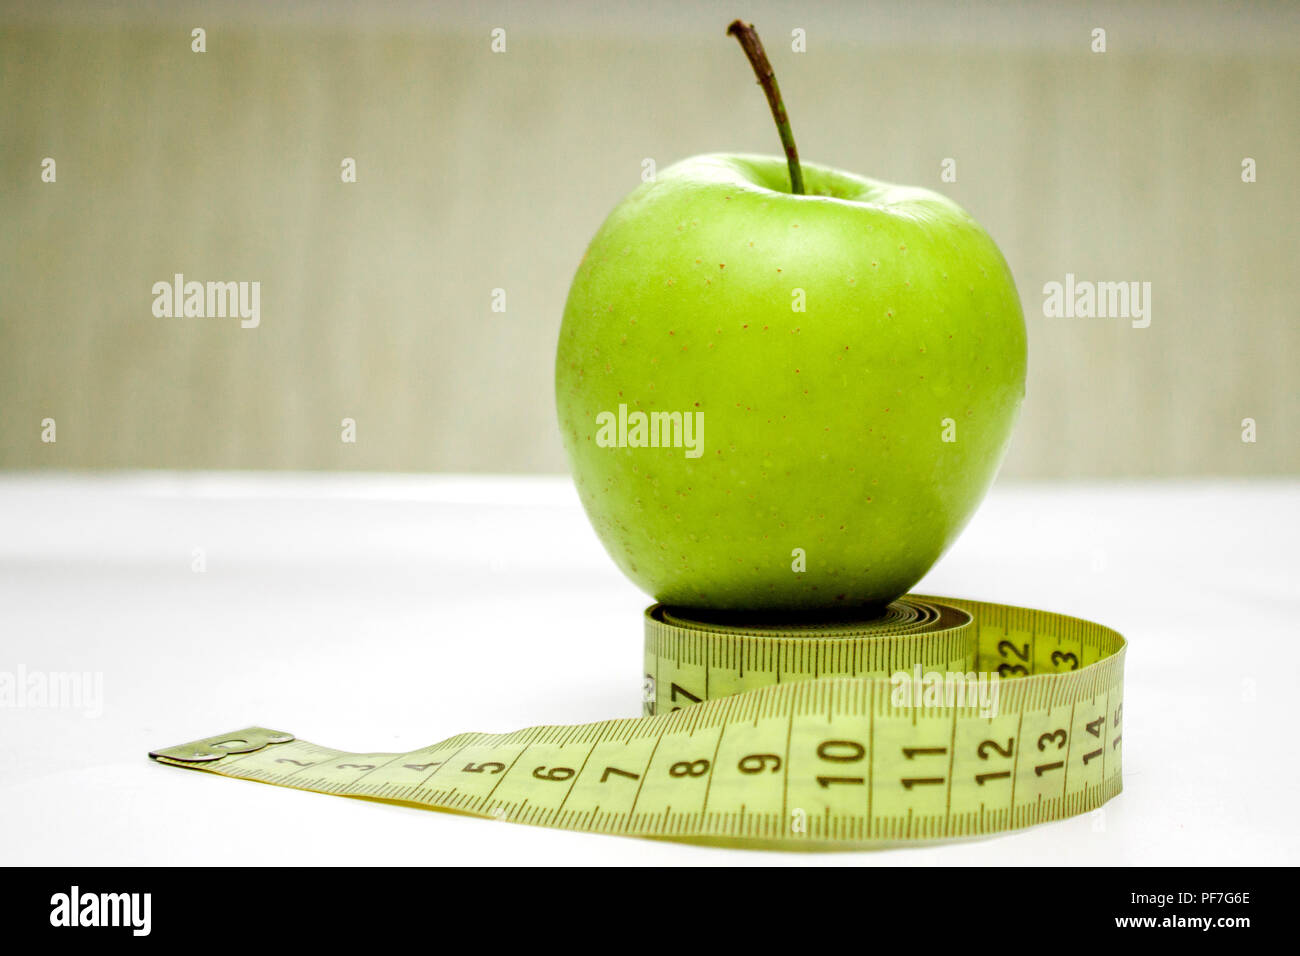 Diet, healthy eating, food and weigh loss concept. Measuring tape and green apple Stock Photo